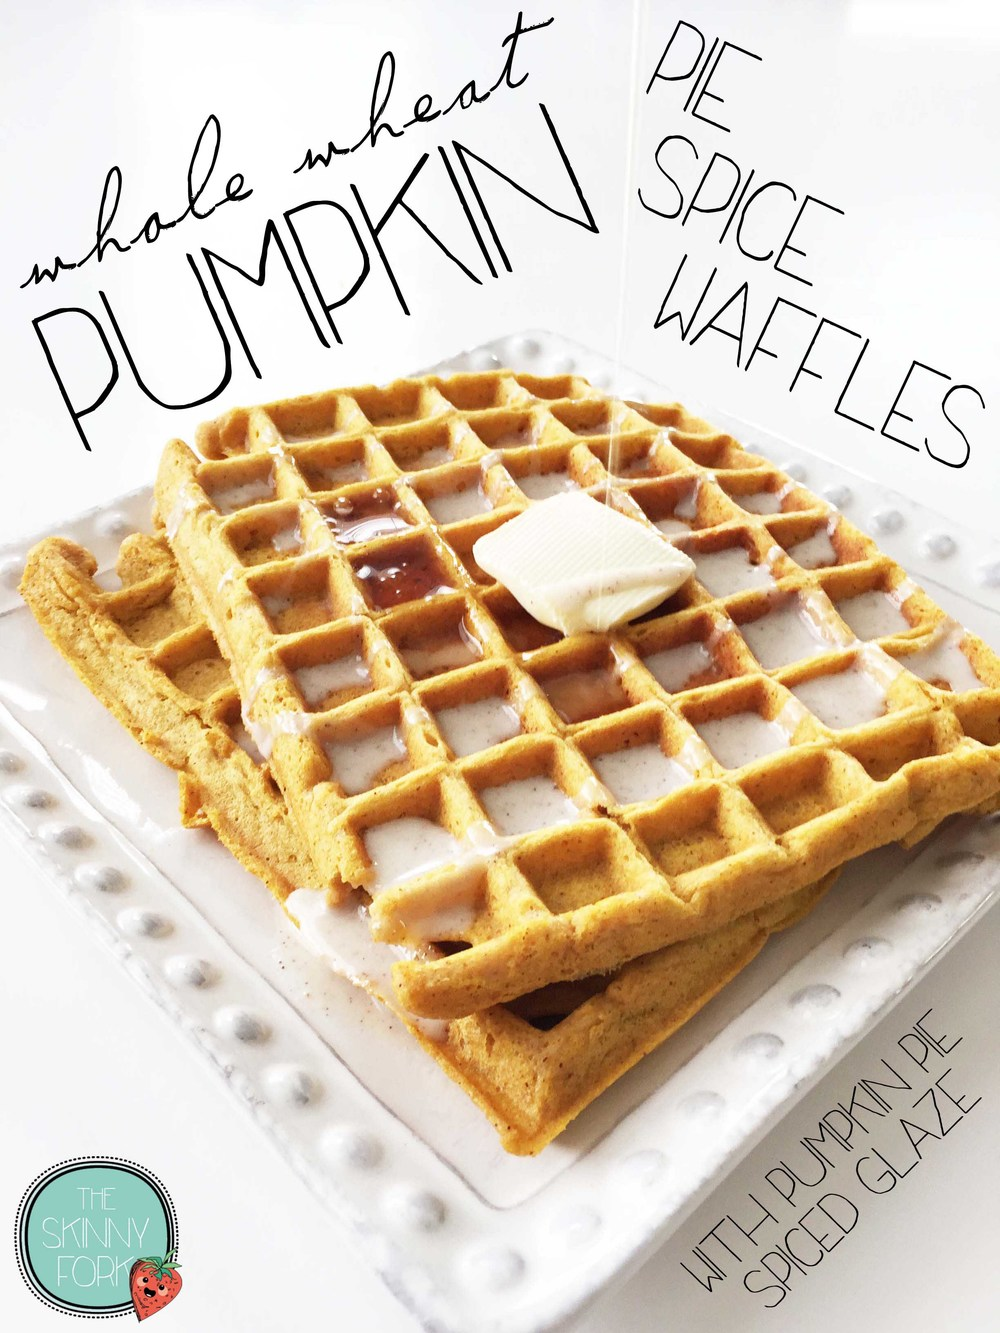 Whole Wheat Pumpkin Pie Spice Waffles (Sponsored) — The Skinny Fork